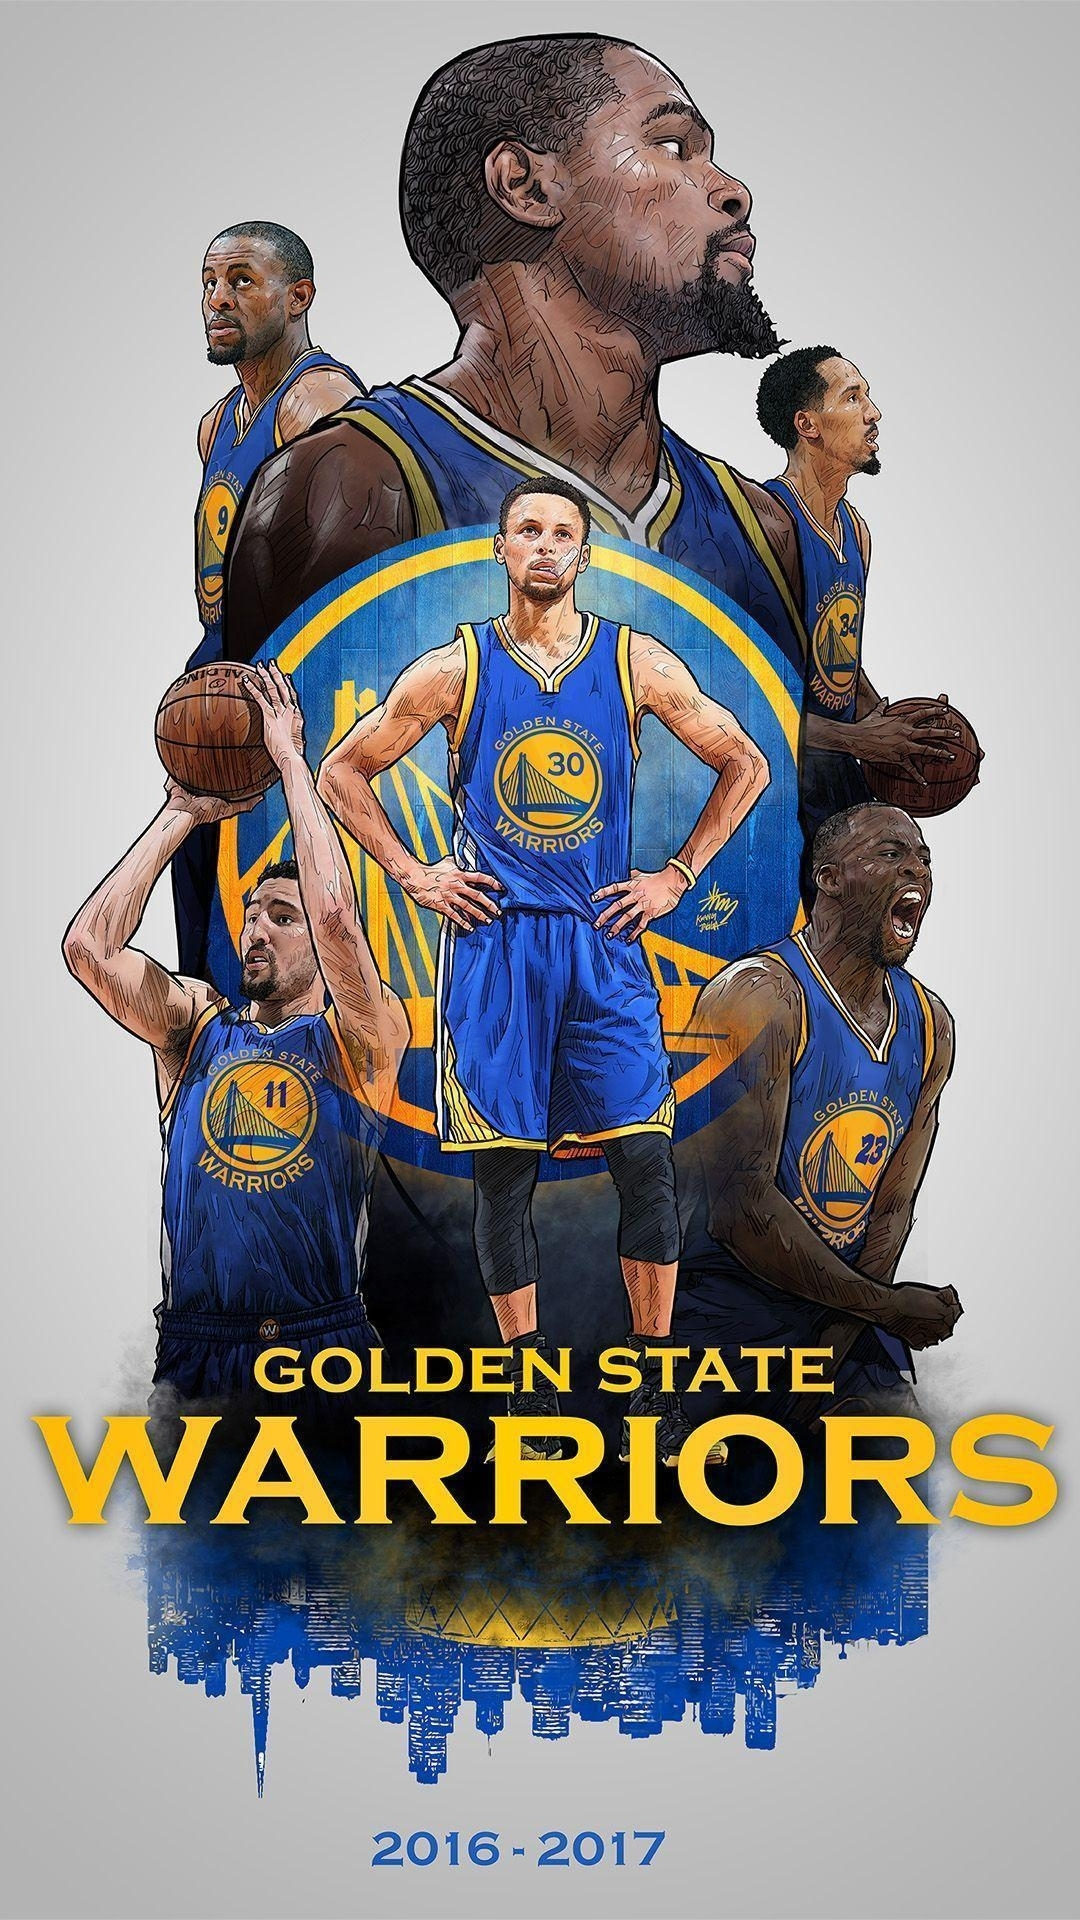 golden state warriors 2017 wallpapers - wallpaper cave